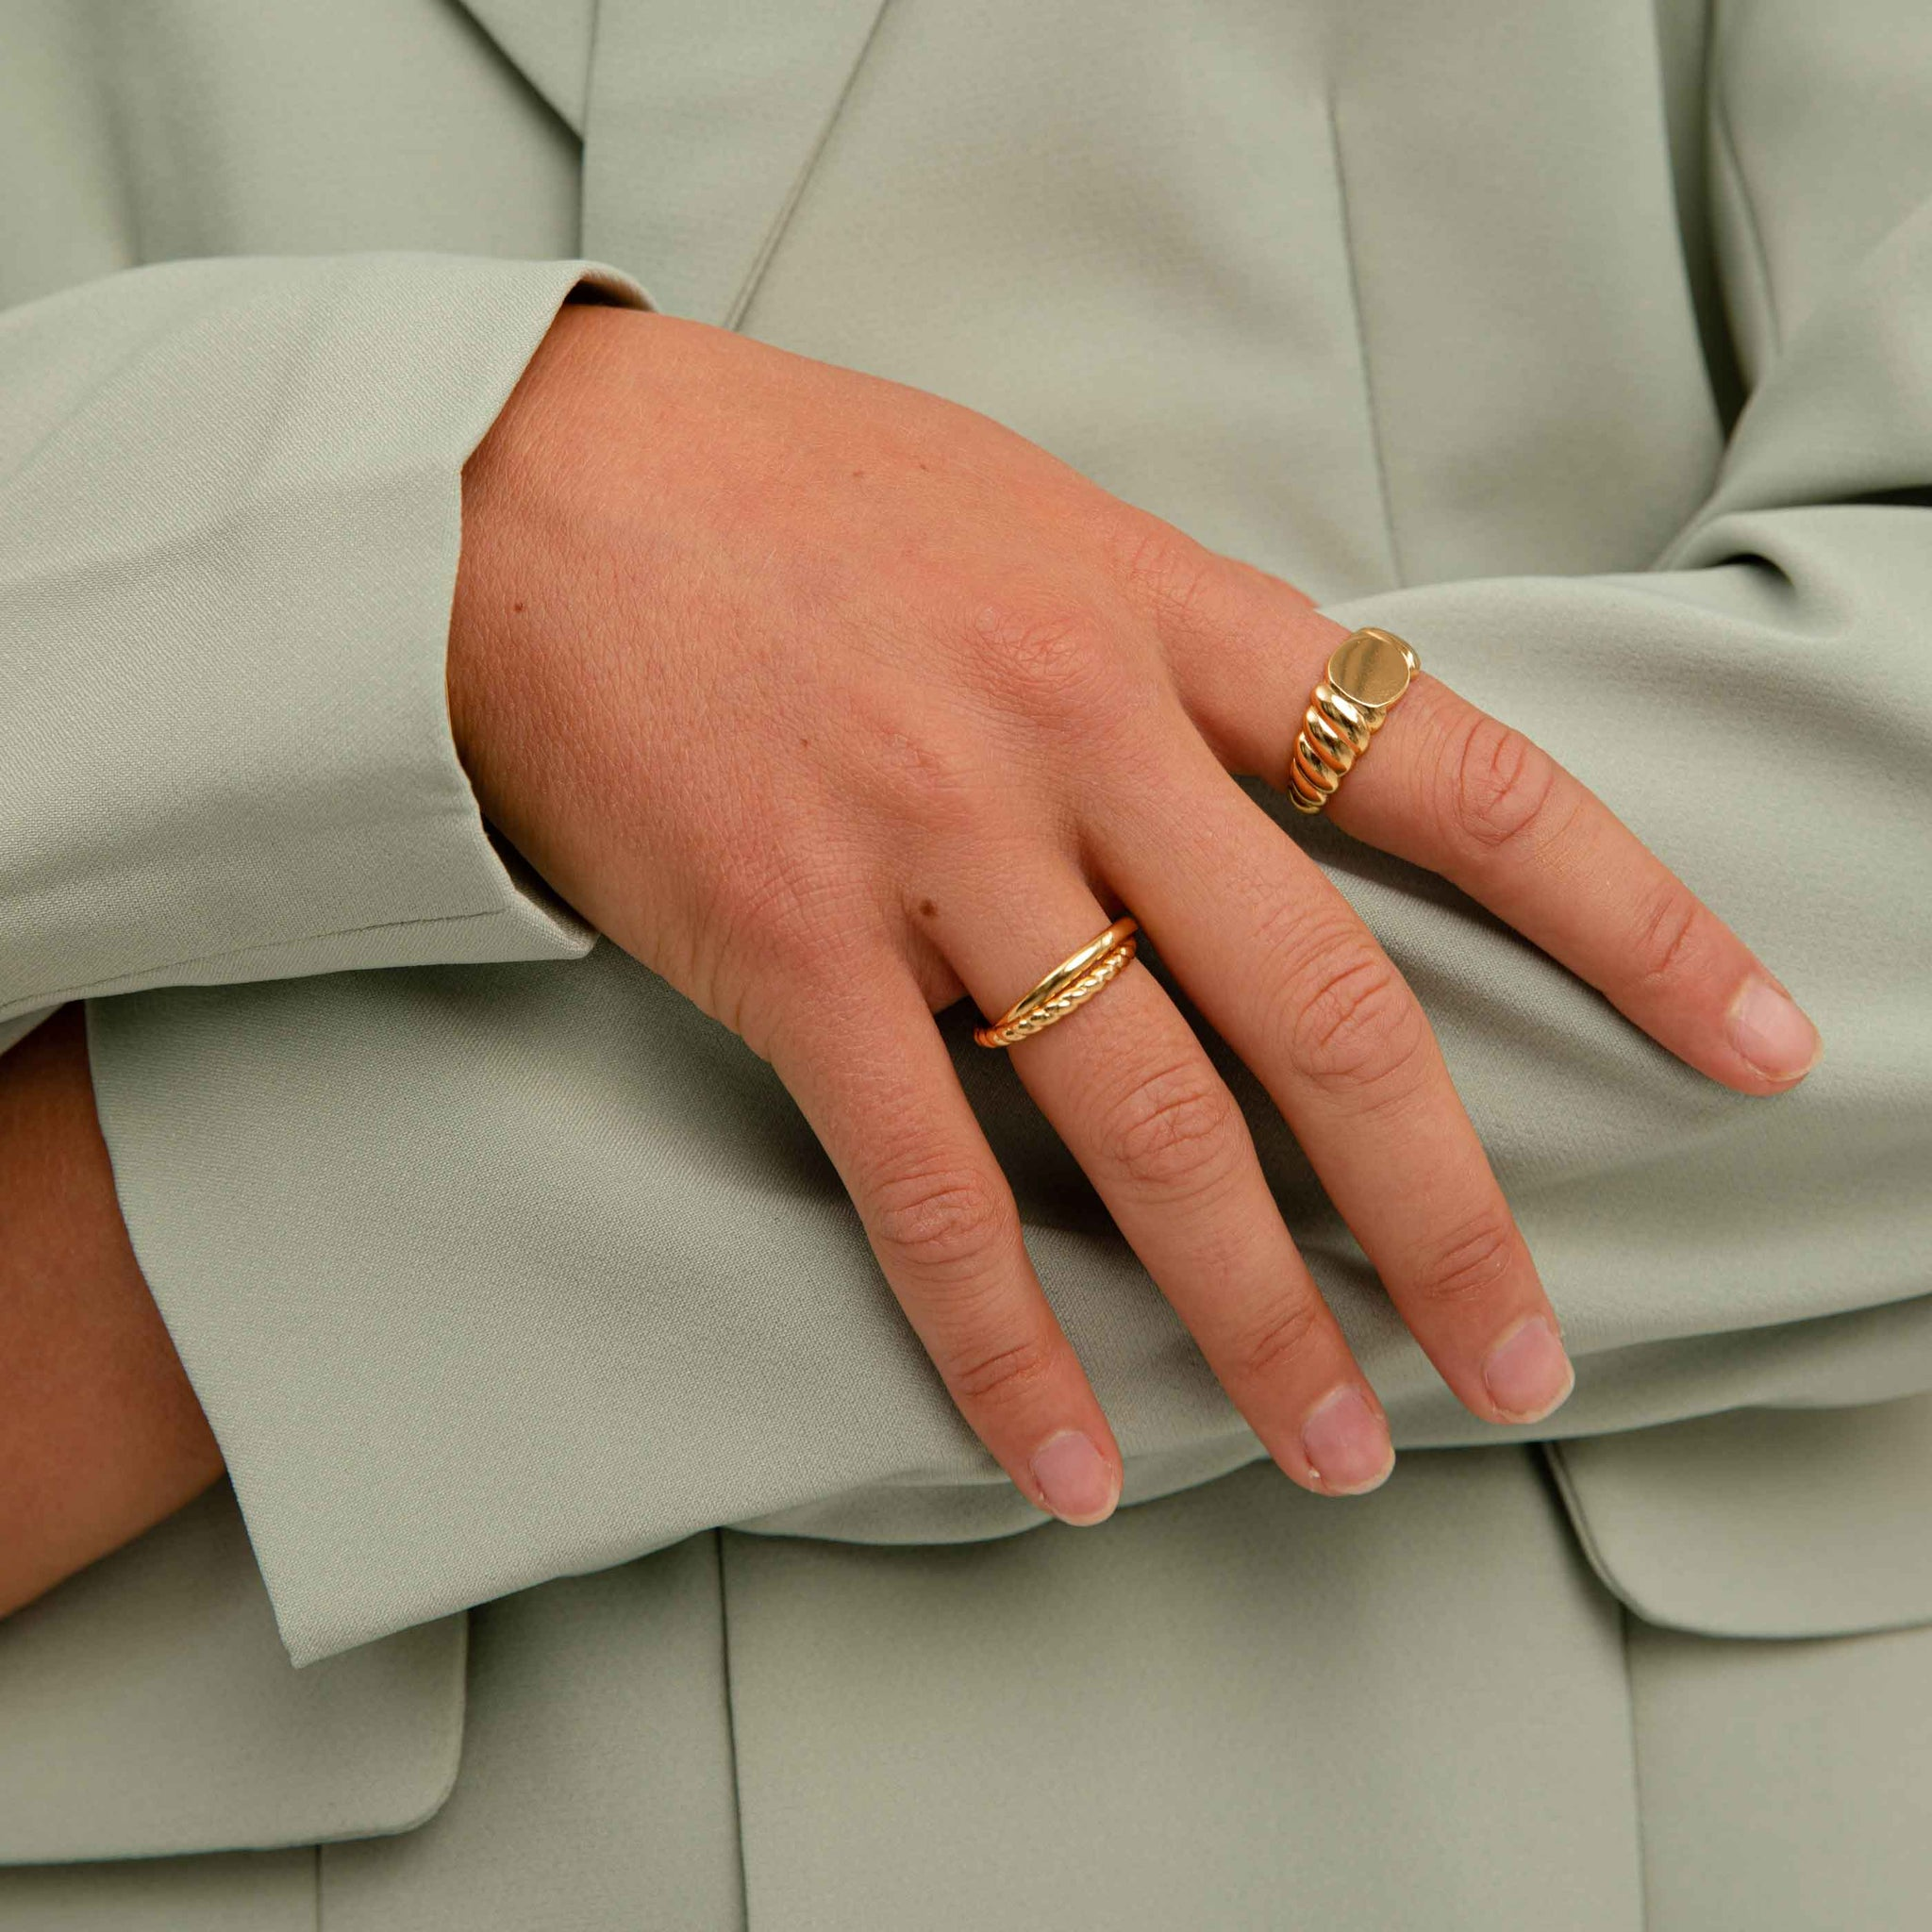 Interlocked Rope & Plain Band Ring in Gold on finger